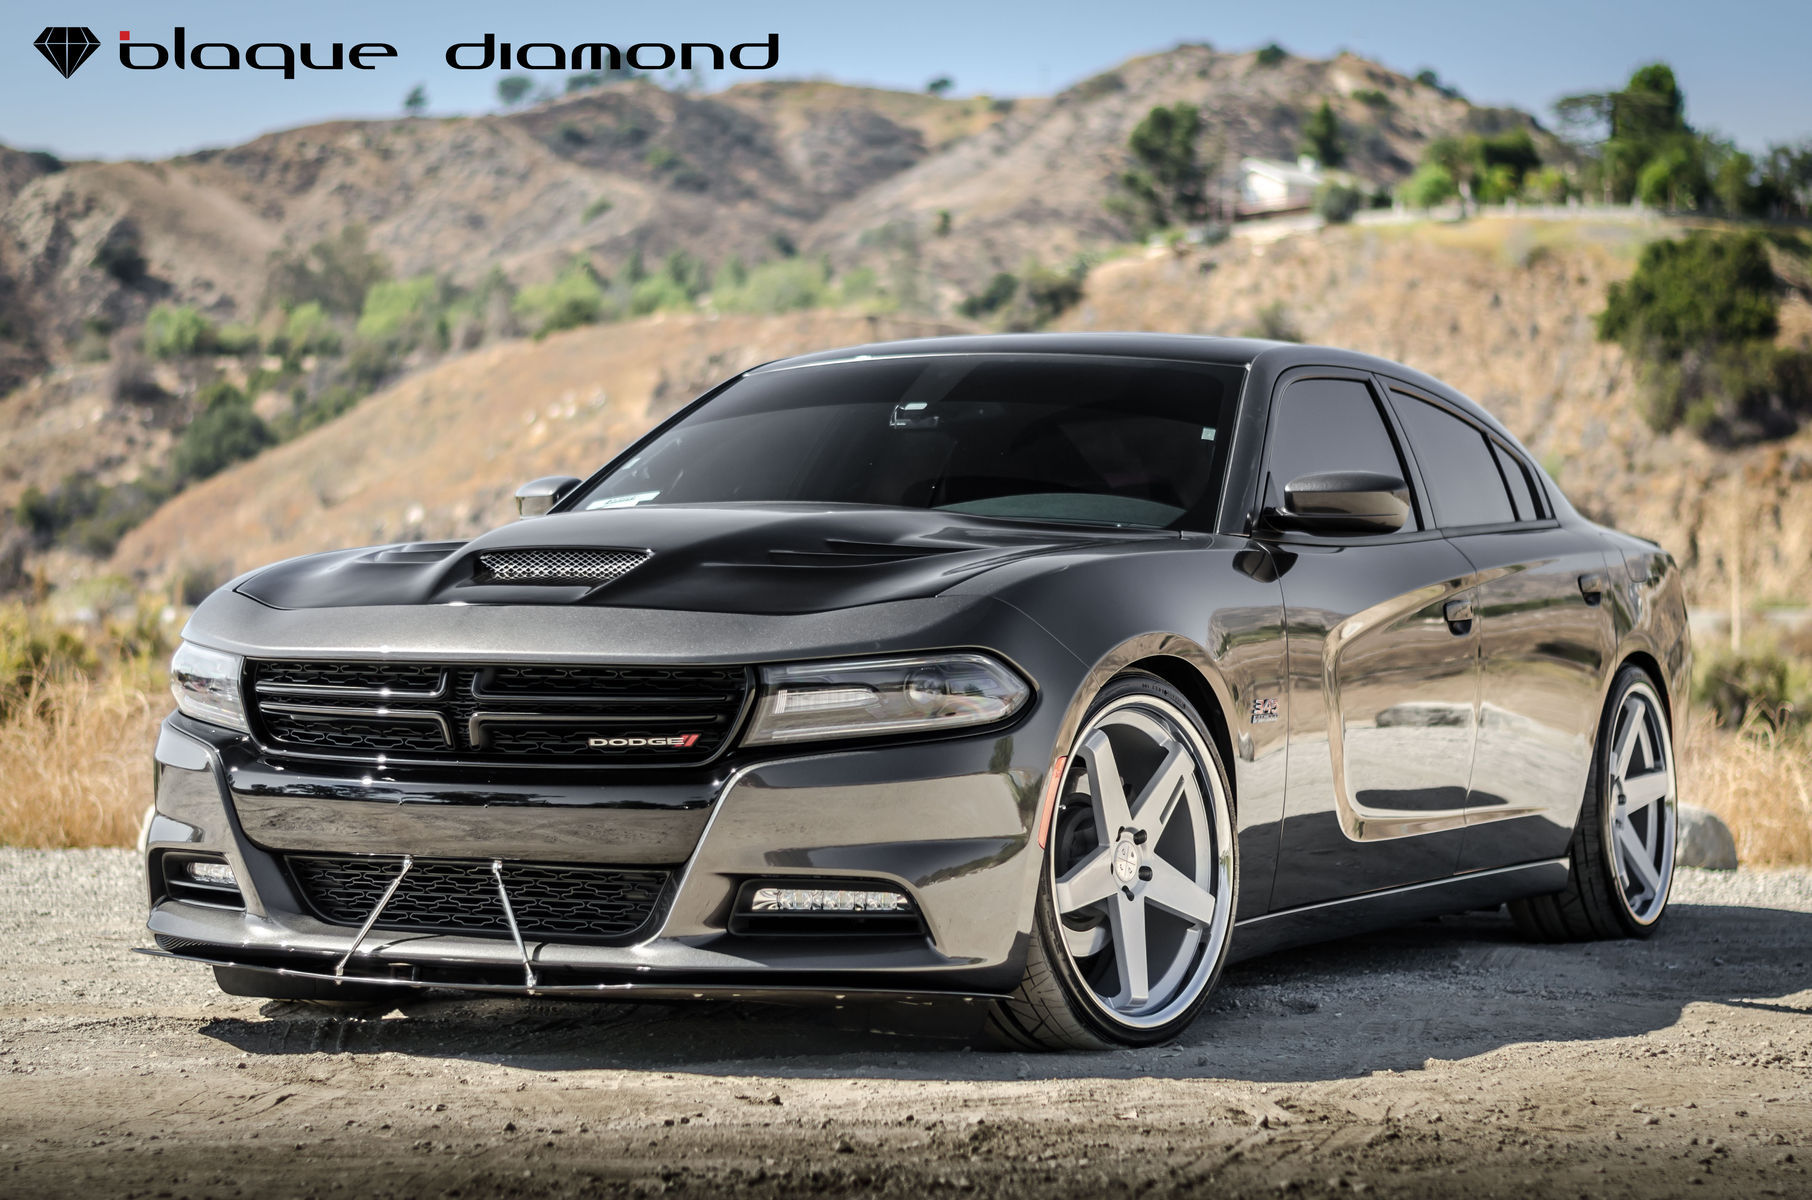 2016 Dodge Charger | 2016 Dodge Charger Fitted With 22 Inch BD-21's in Silver w/ Chrome SS Lip